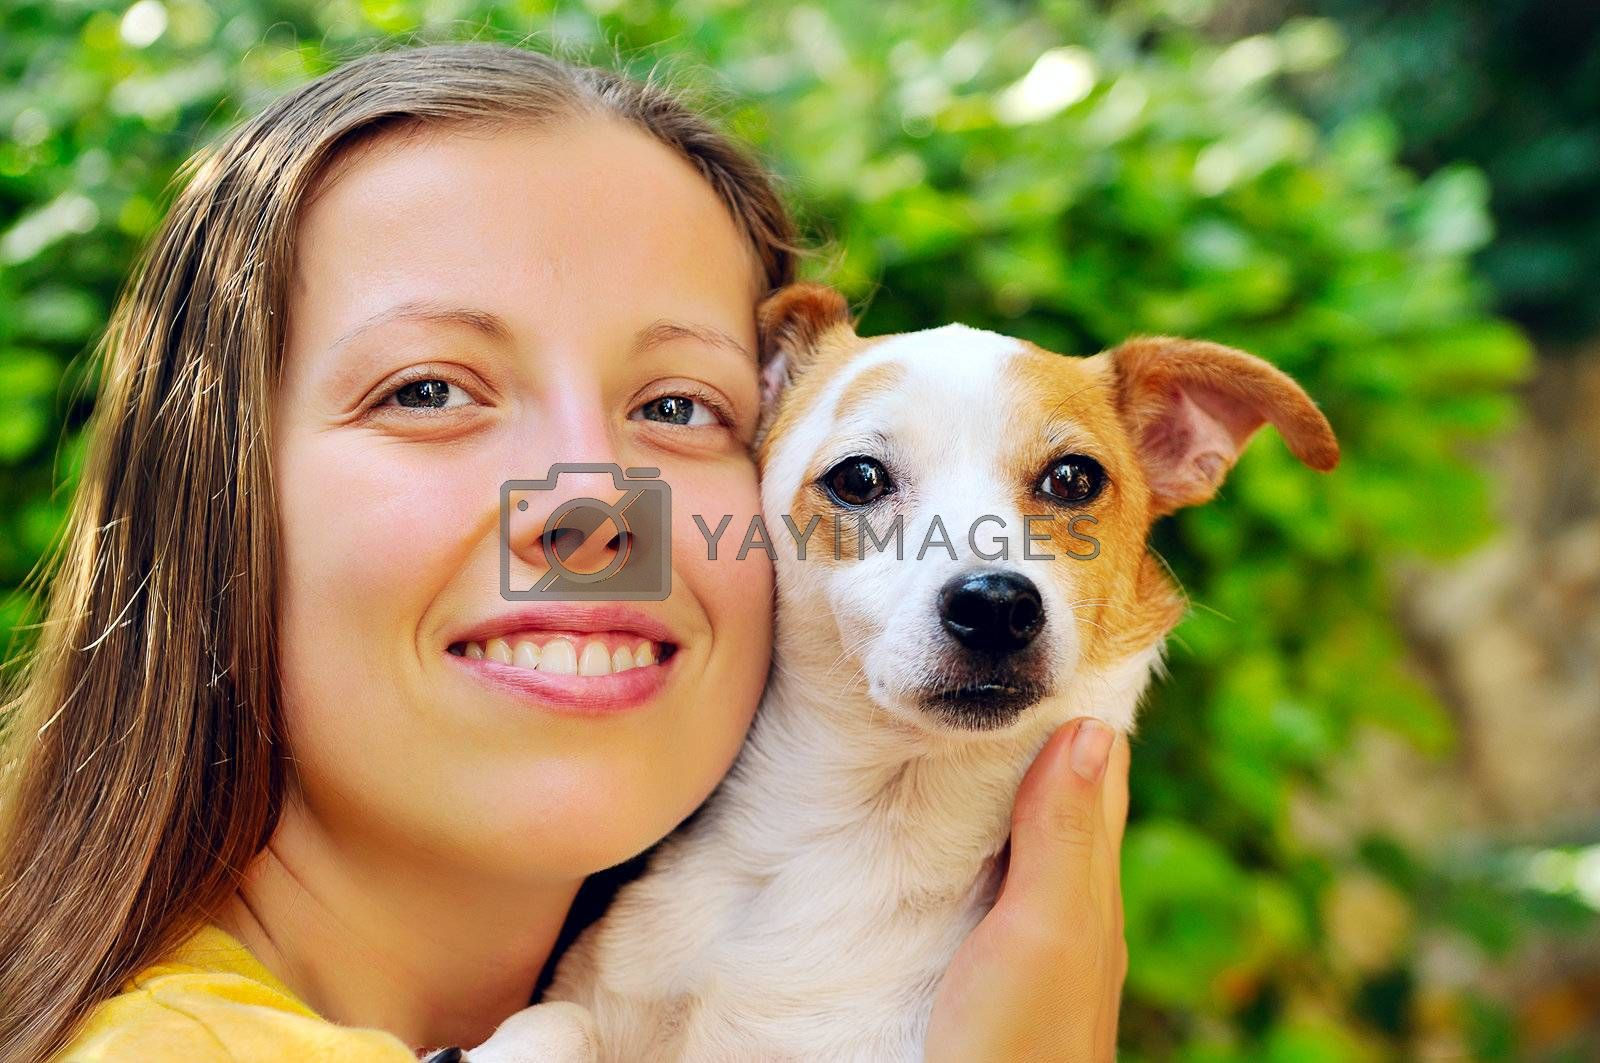 A girl holding a favorite little dog to hold her close